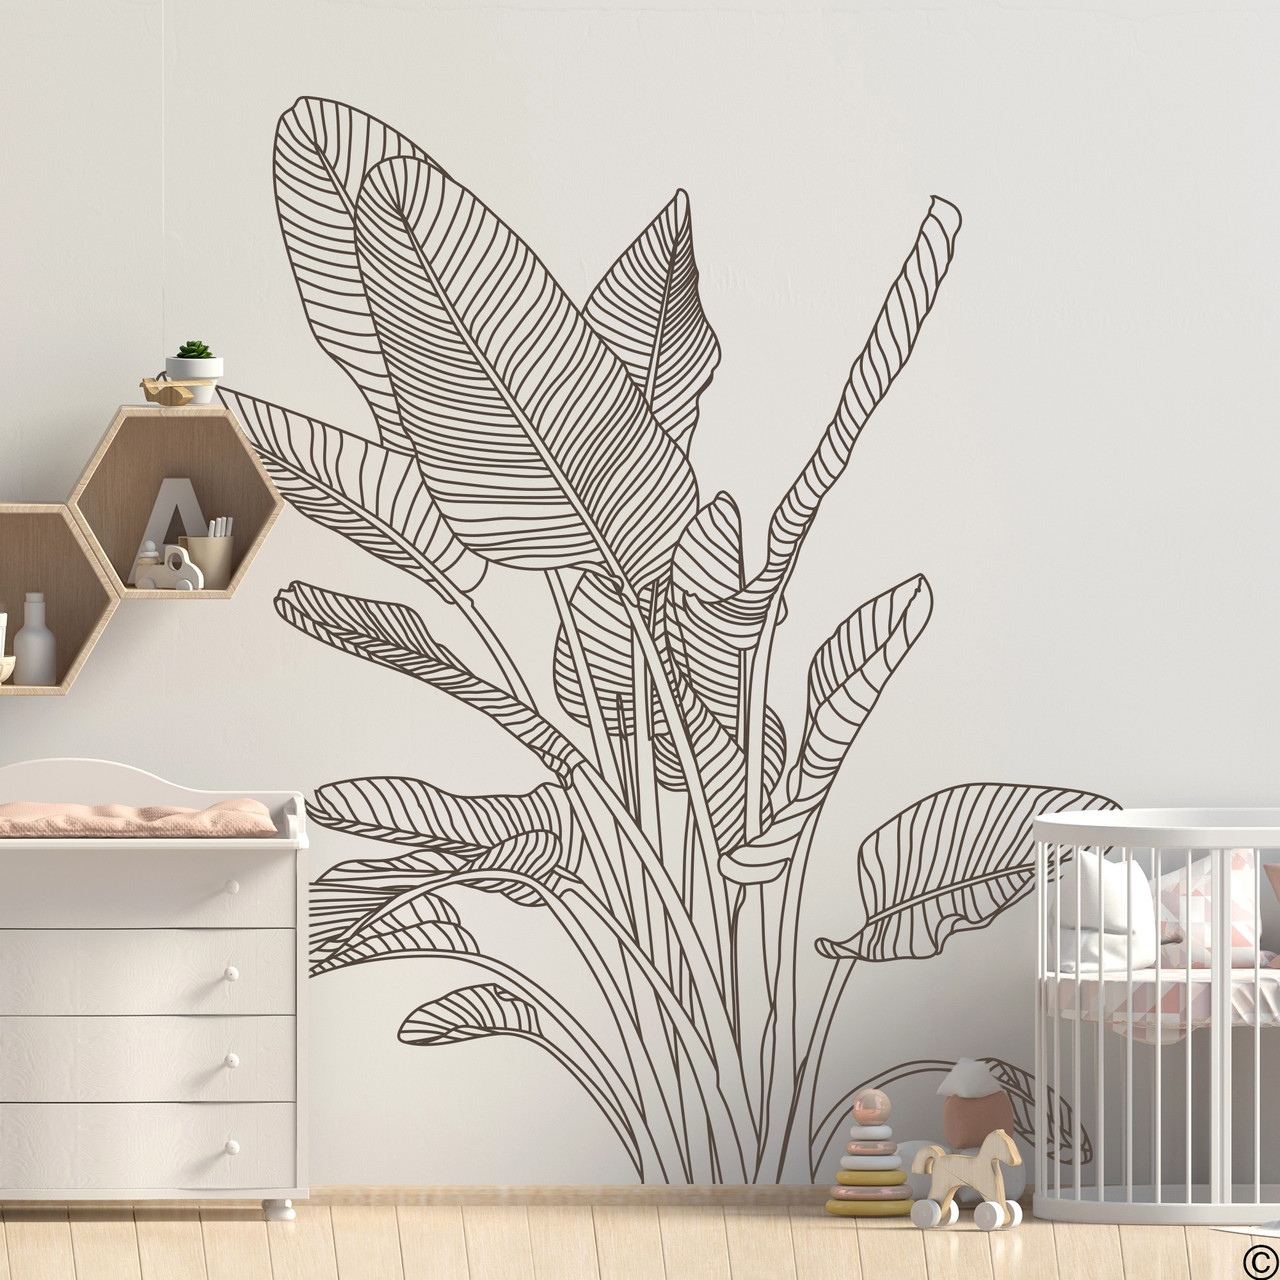 The Bird of Paradise wall decal art shown here in brown vinyl color.